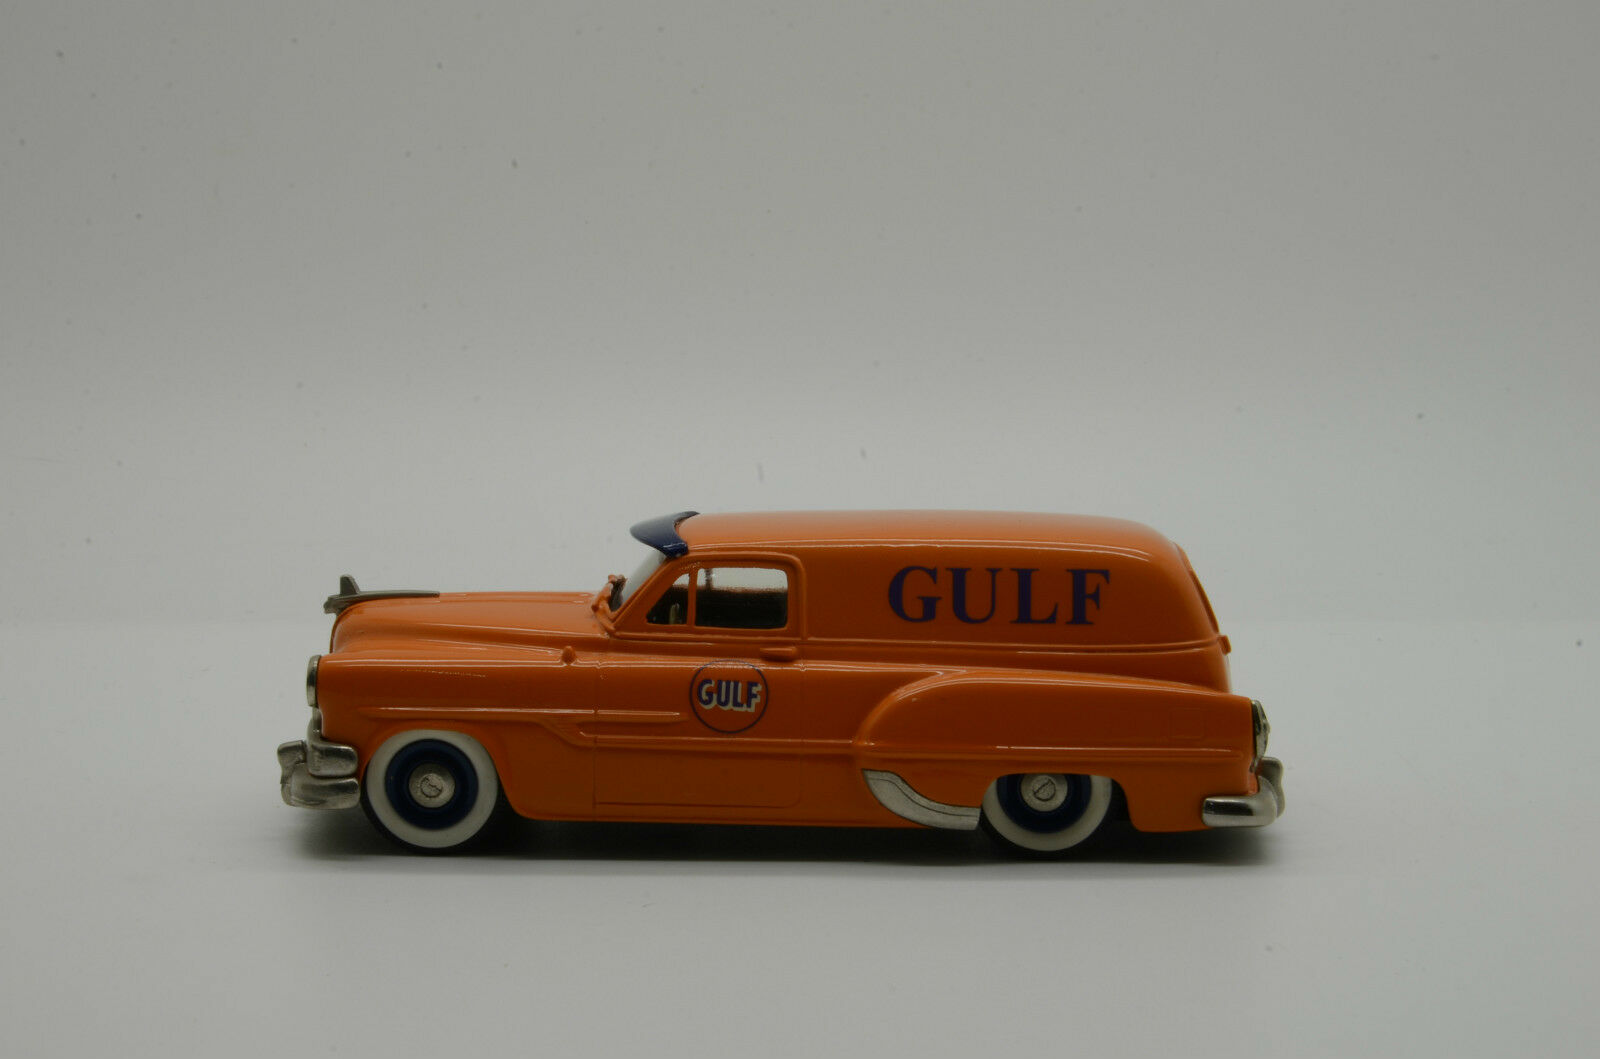 Pontiac Sedan Delivery Gulf Oil Brooklin BRK. 31 1953 1 1 1 43 10efb3